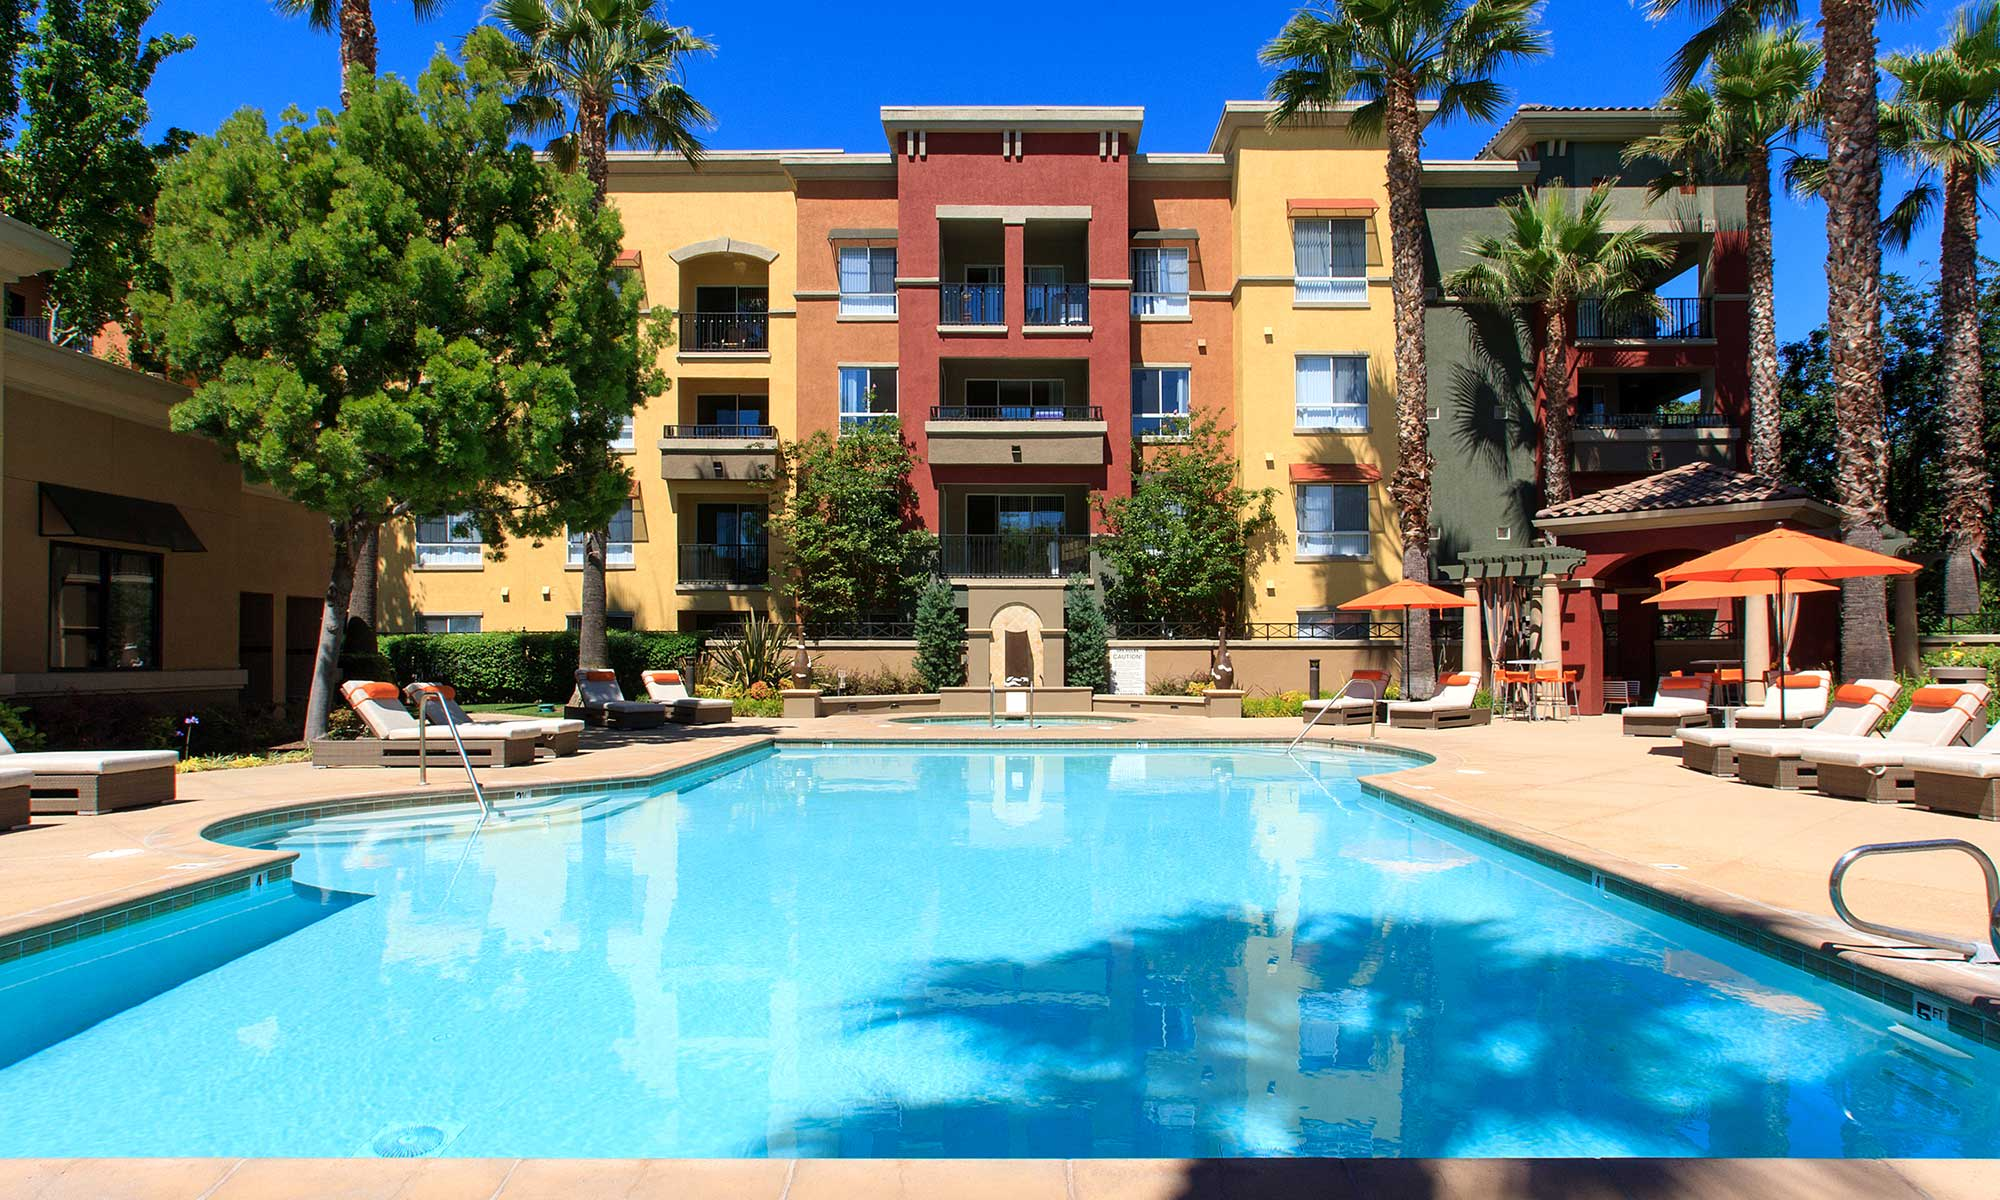 Dublin, CA Apartments for Rent in the Bay Area | Waterford ...